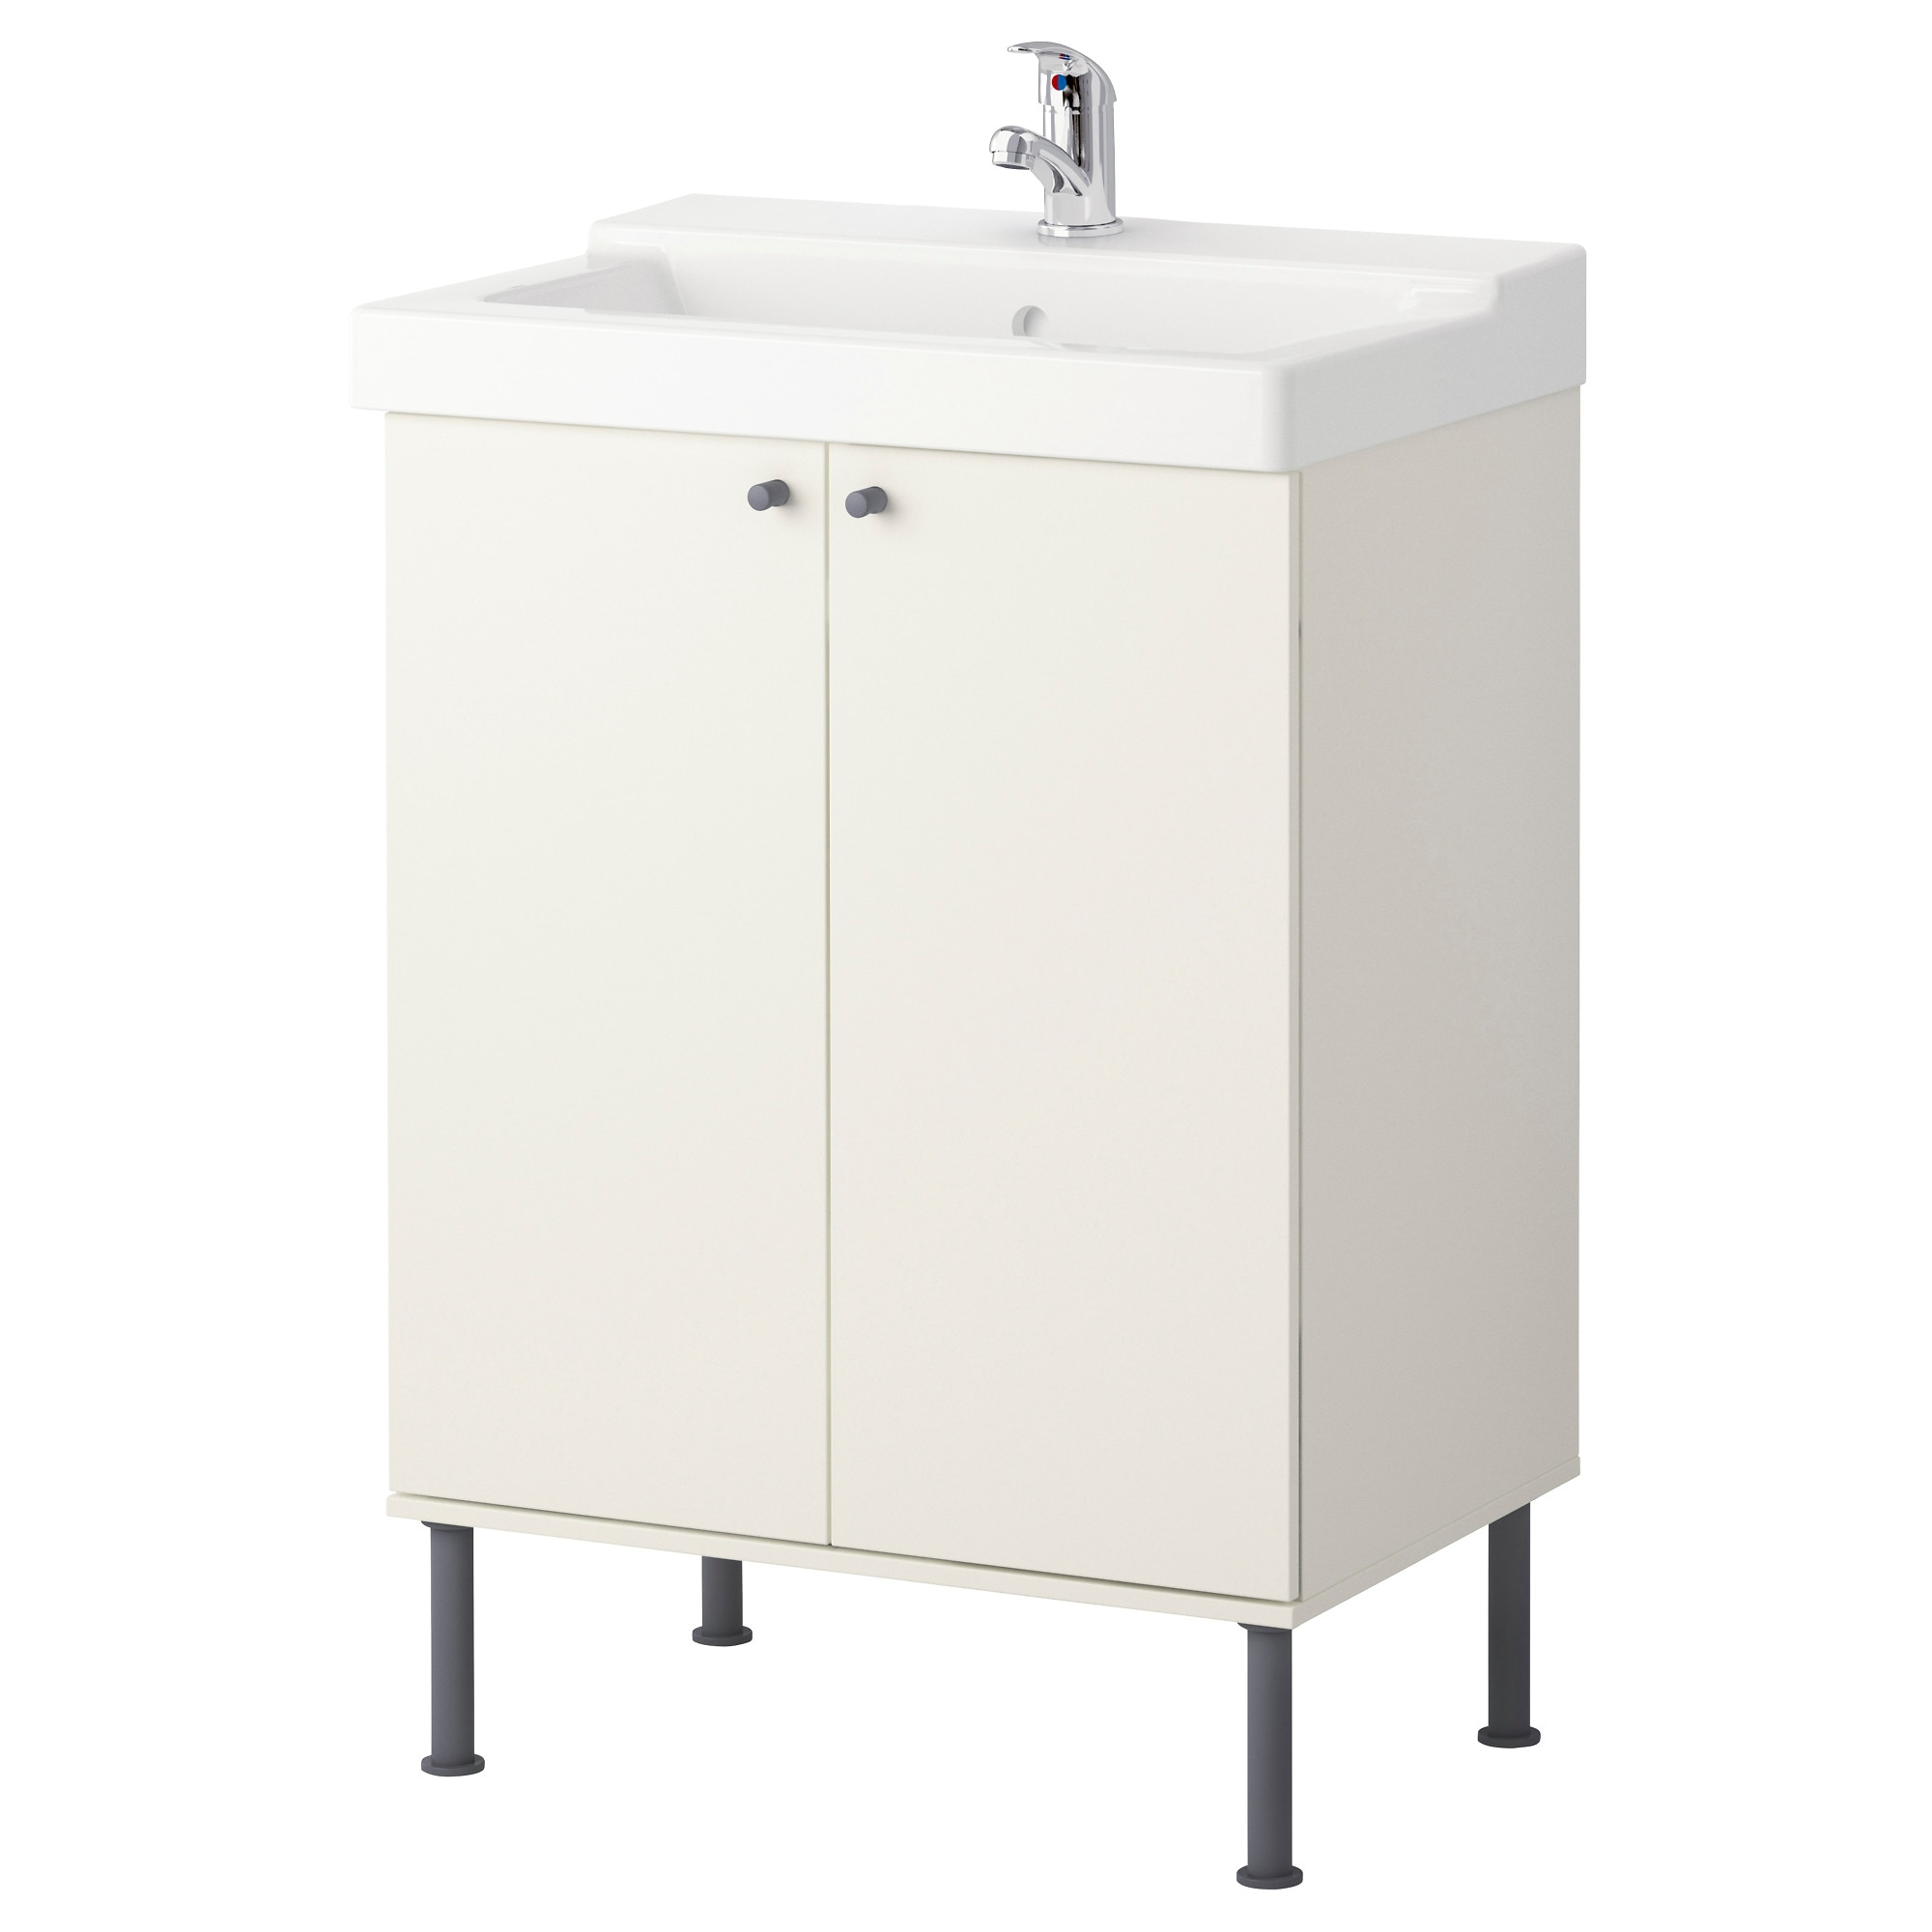 Bathroom sink cabinets ikea - Bathroom Sink Cabinets Ikea 2